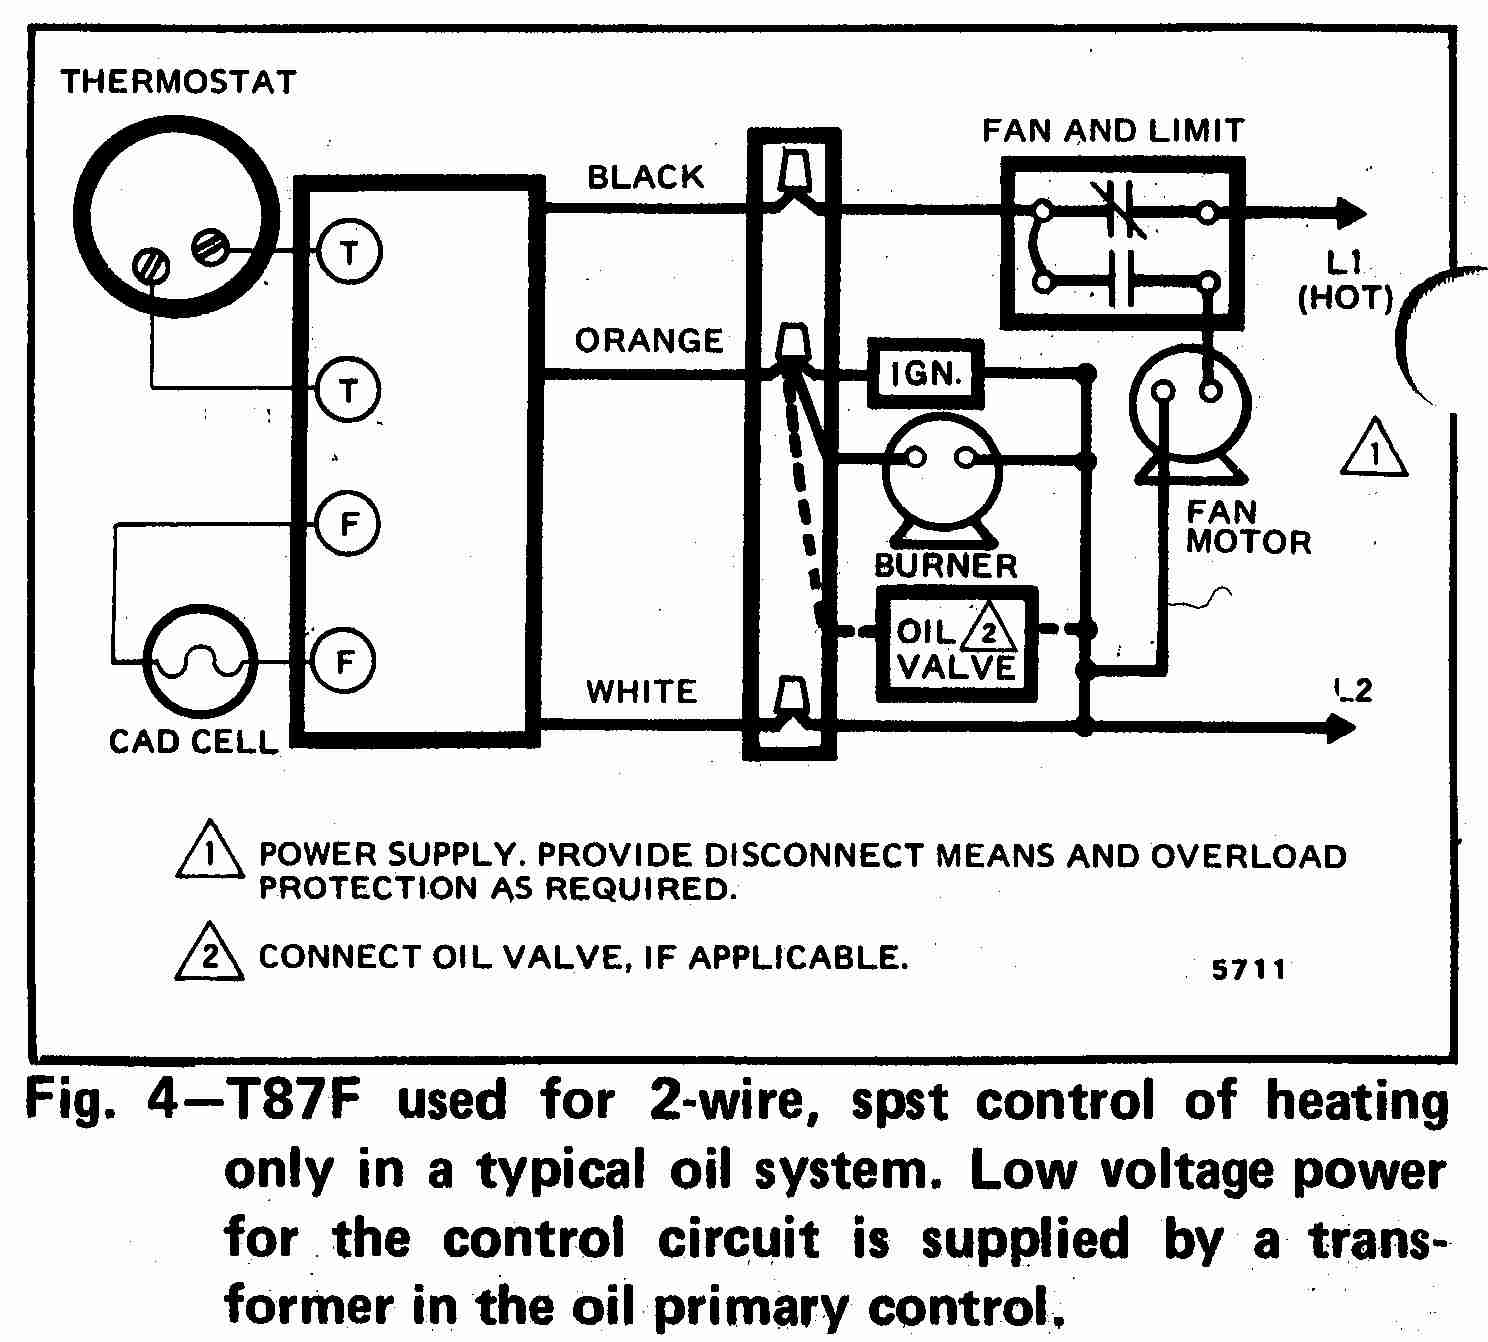 TT_T87F_0002_2W_DJF room thermostat wiring diagrams for hvac systems imit boiler thermostat wiring diagram at crackthecode.co